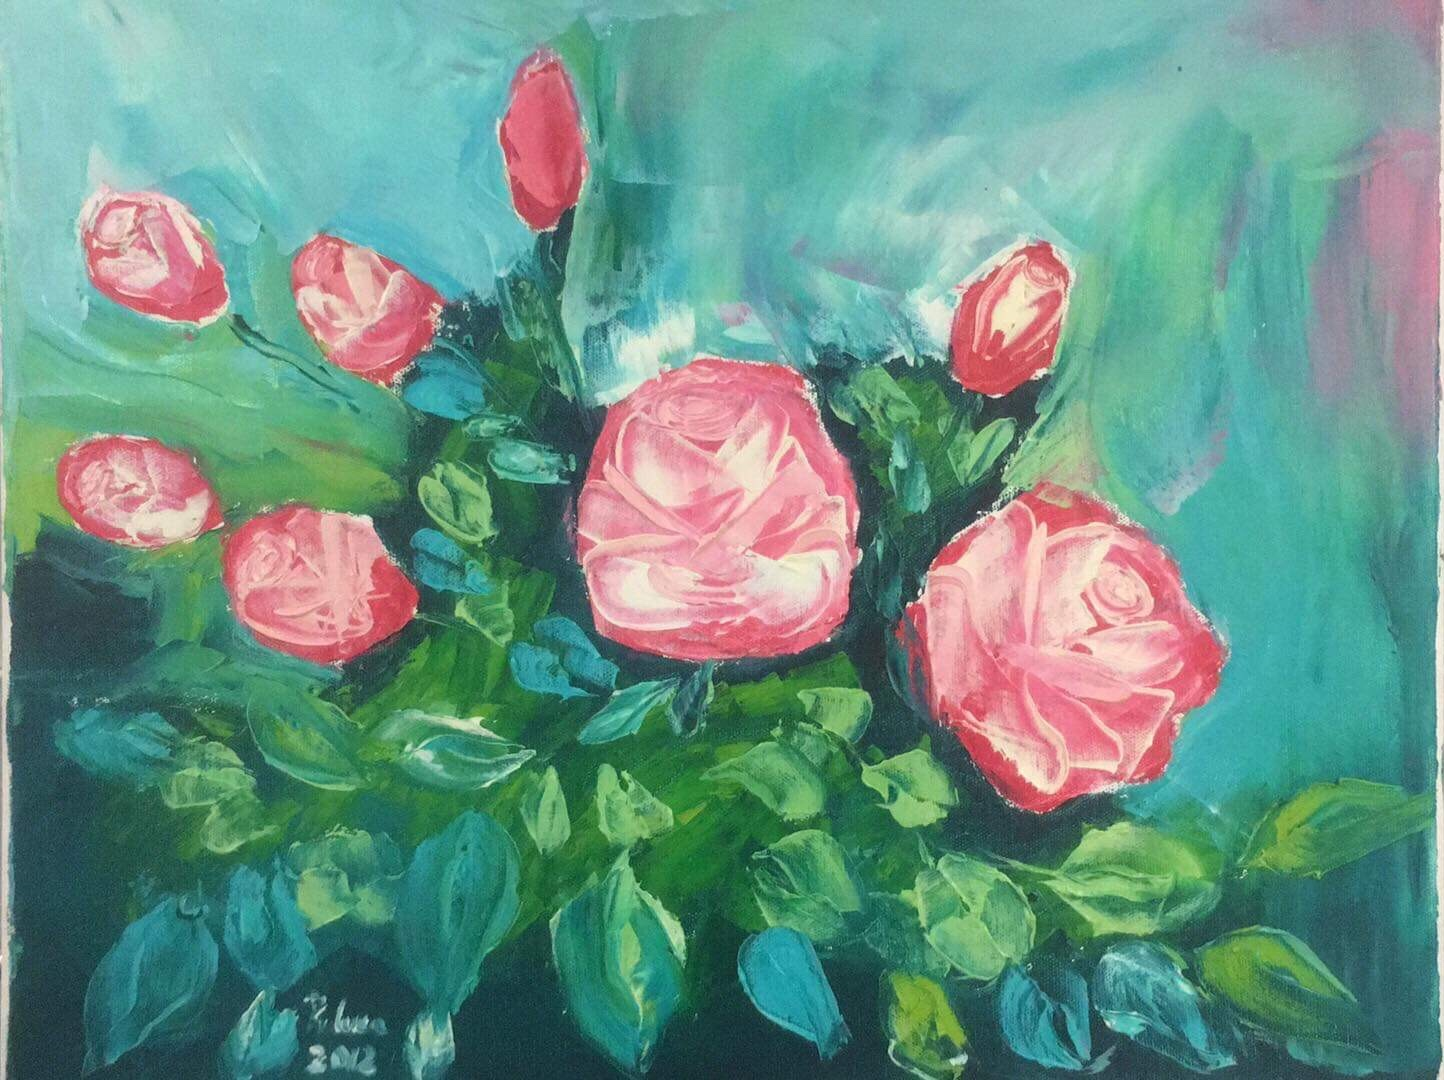 Roses bouquet  artwork by Raluca Tiganila - art listed for sale on Artplode